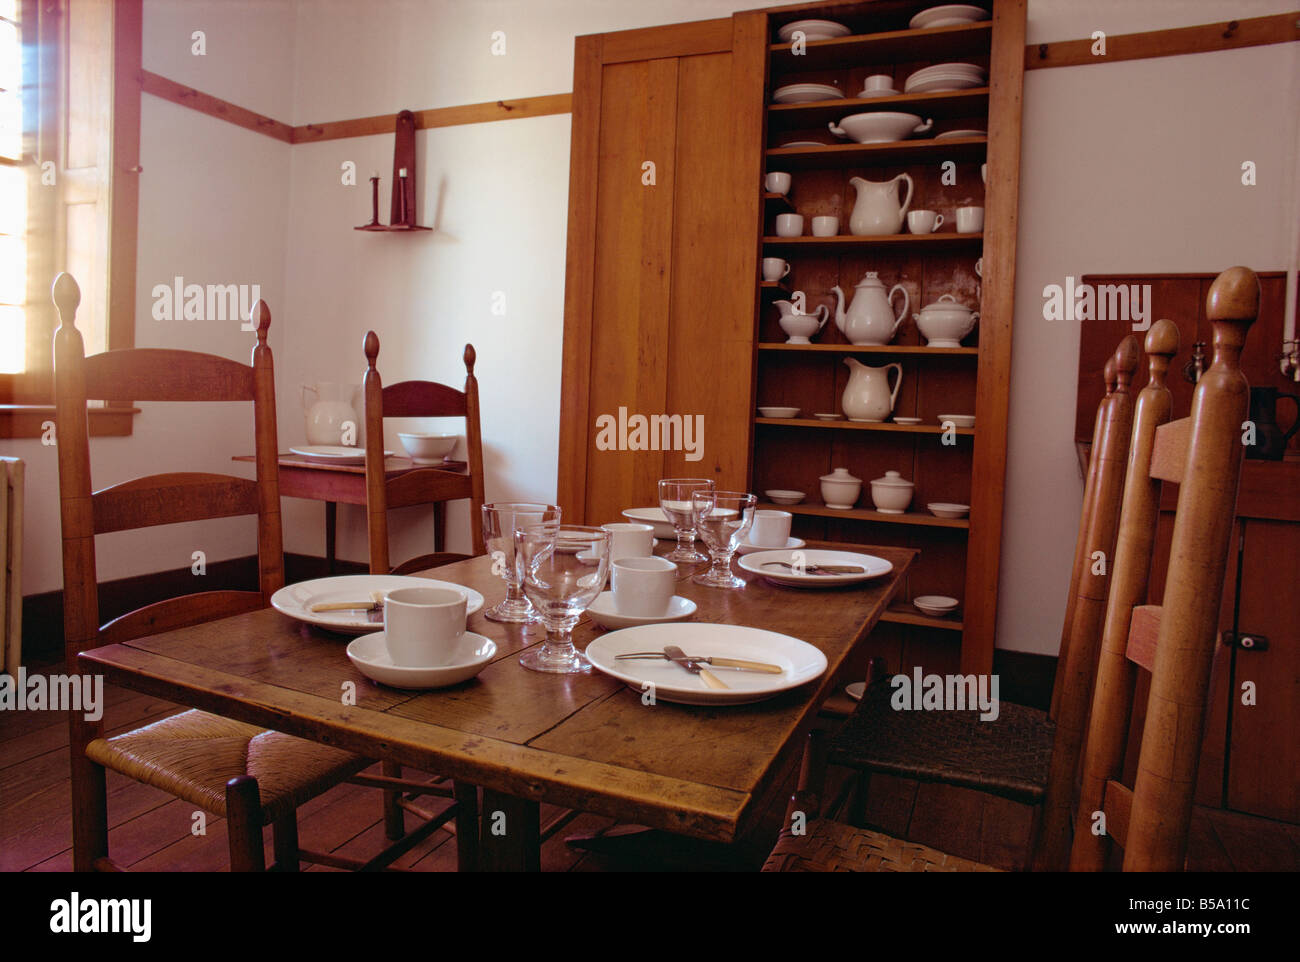 interior with table chairs white china and cupboard in the shaker